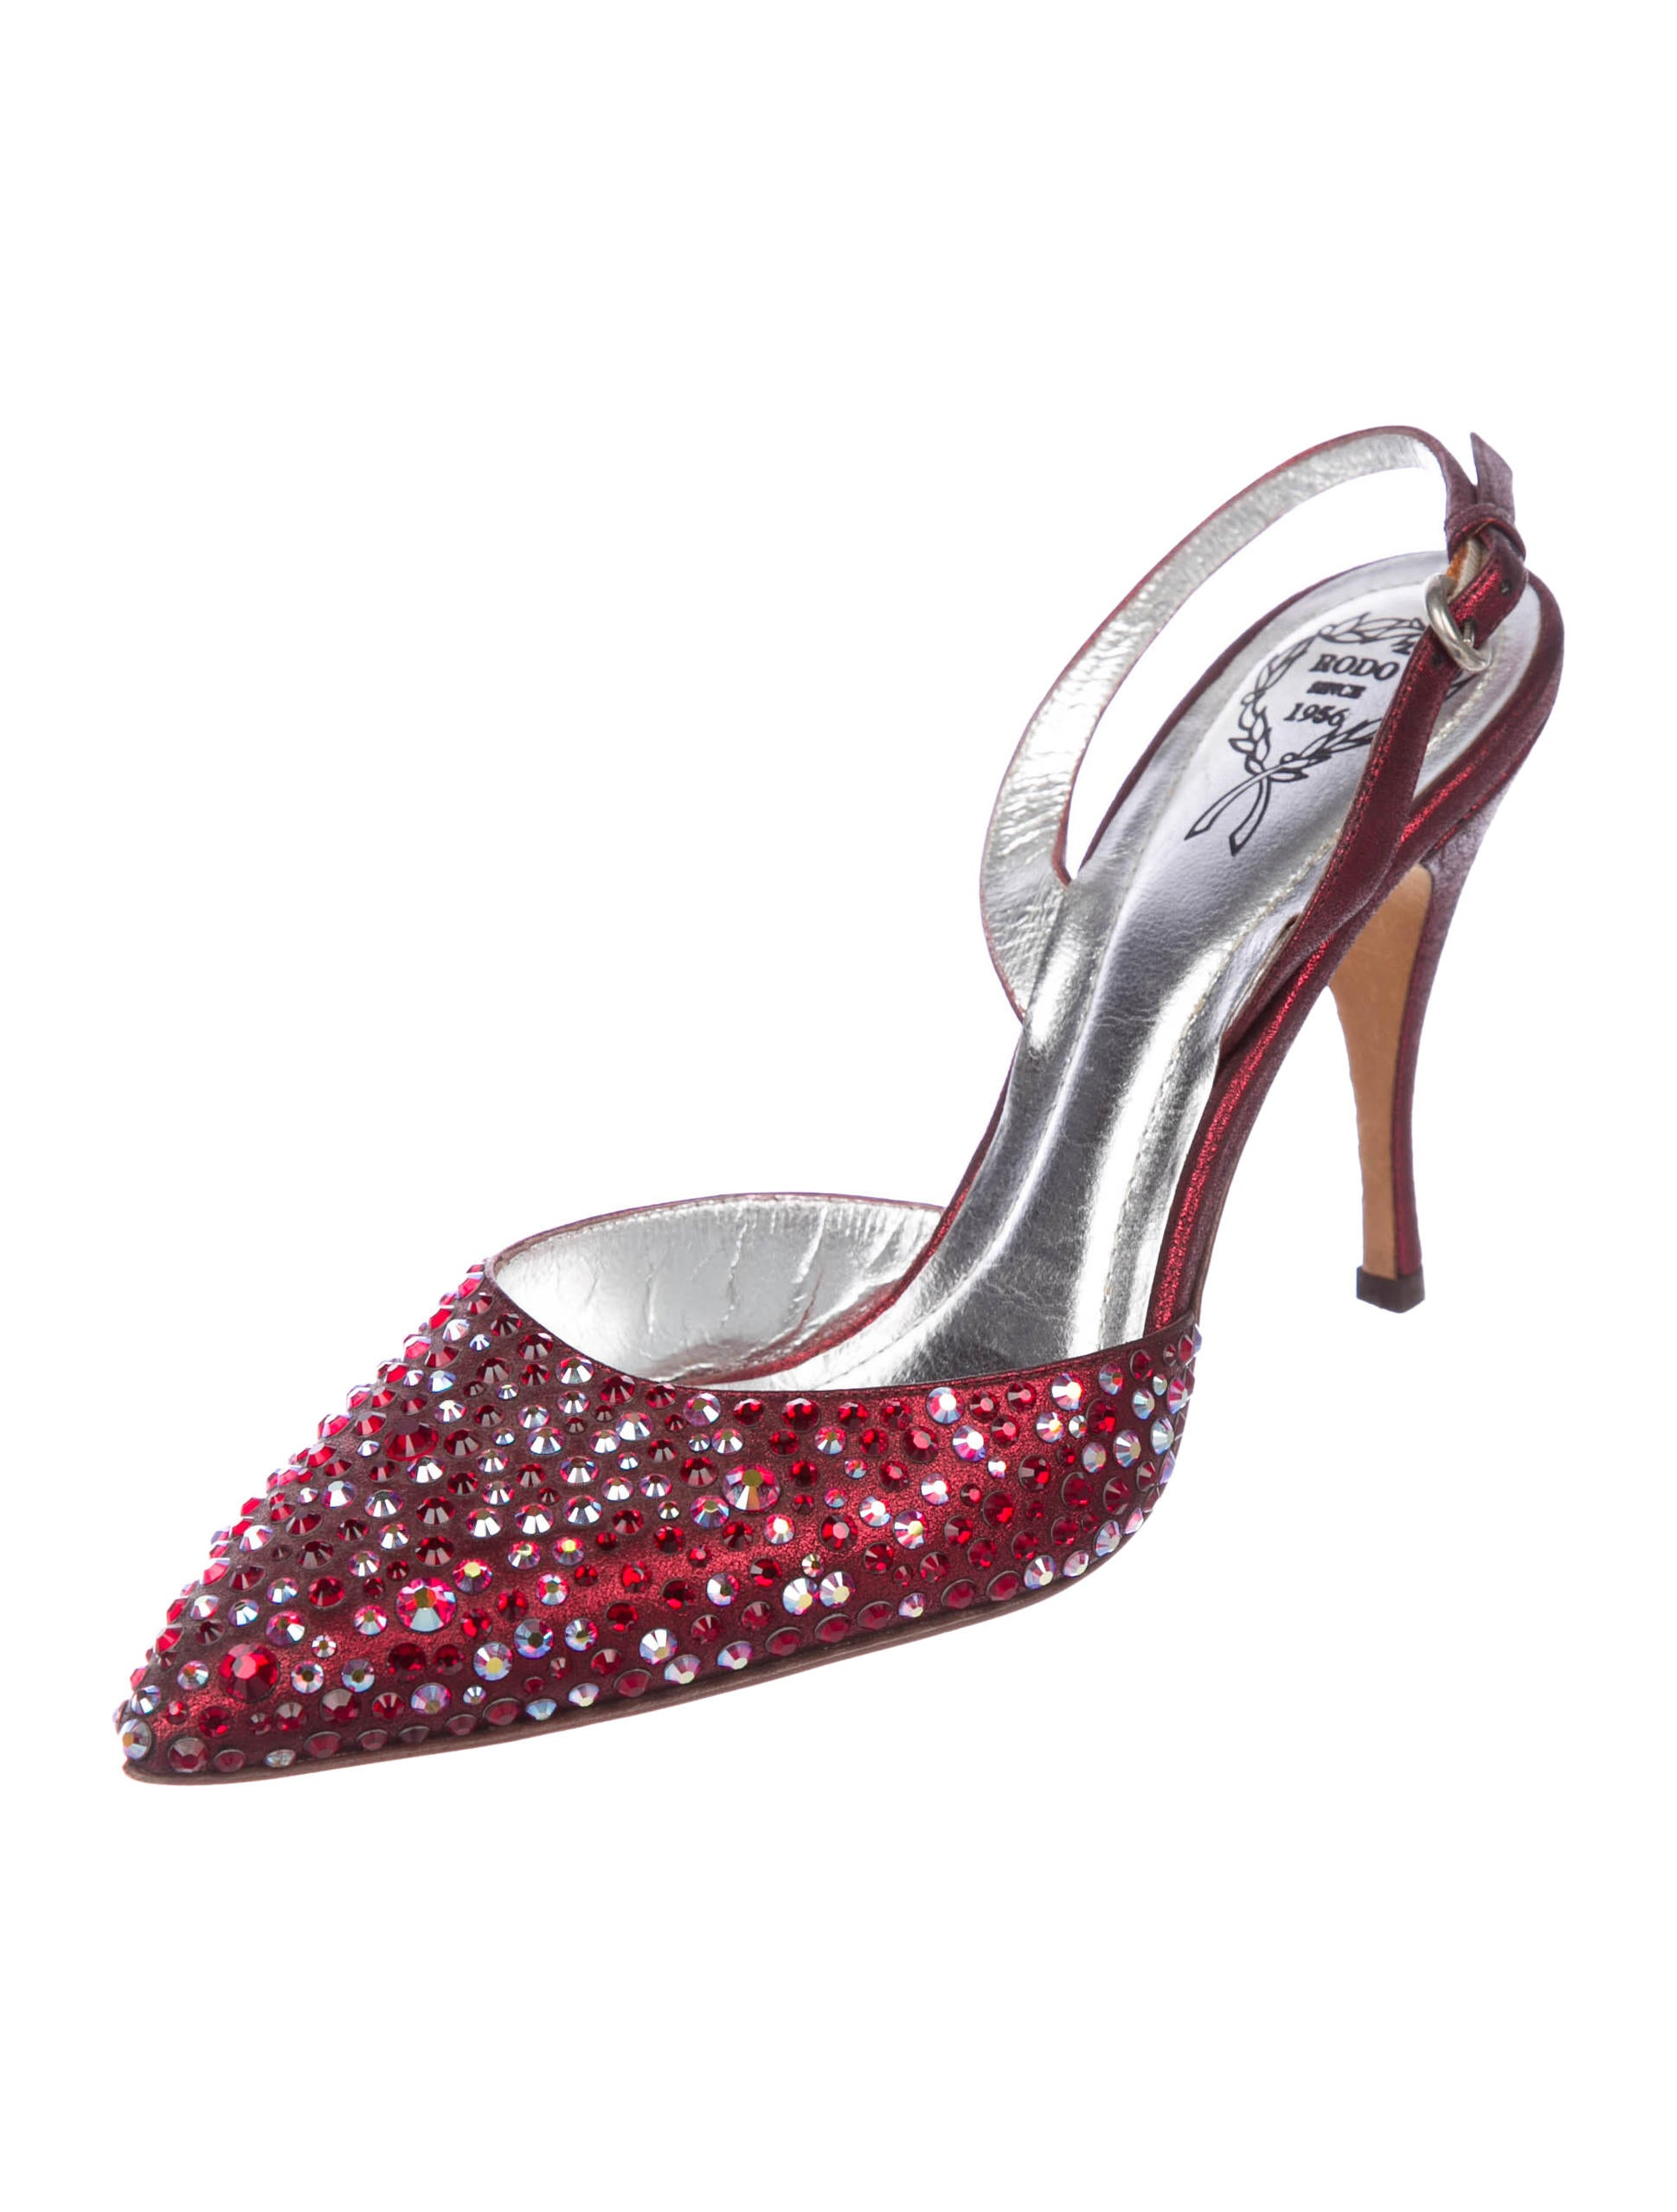 best prices online free shipping Cheapest Rodo Suede Embellished Pumps 8BVC02WN